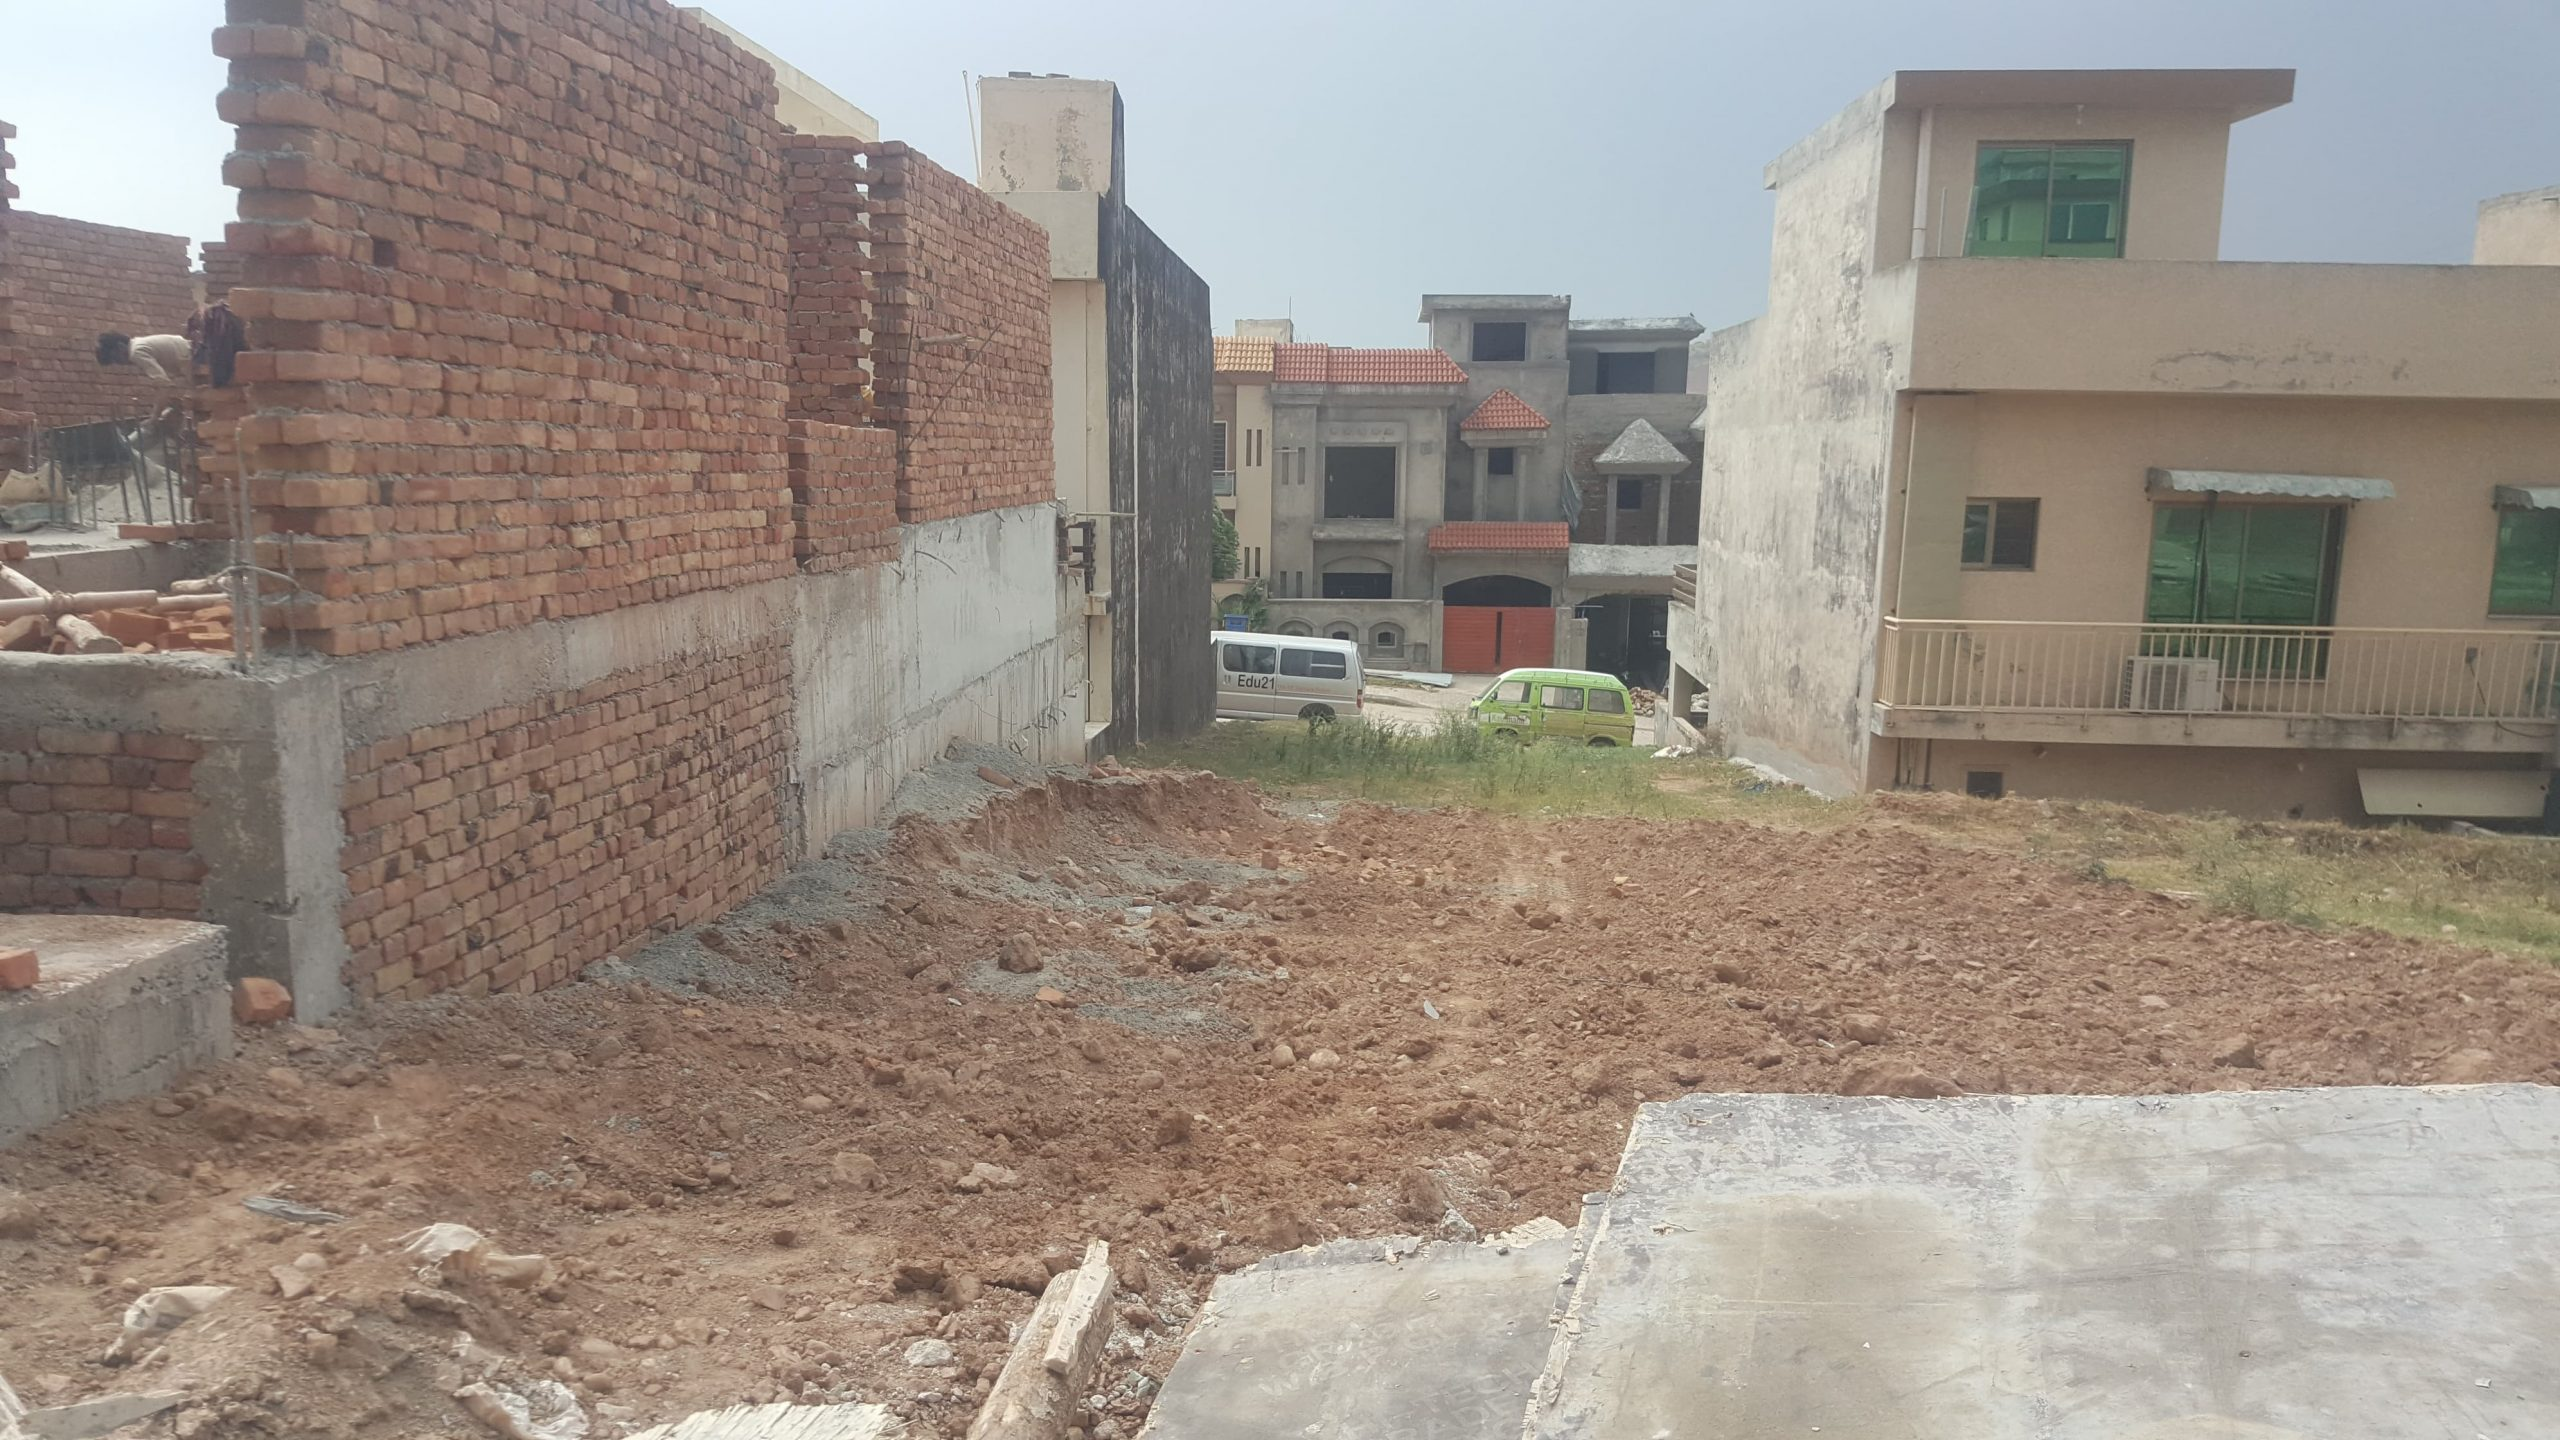 Bahria Town Phase 8 Overseas Sector 5 Plot For Sale 5 marla On Ideal Location Ready For Construction Reasonable Price